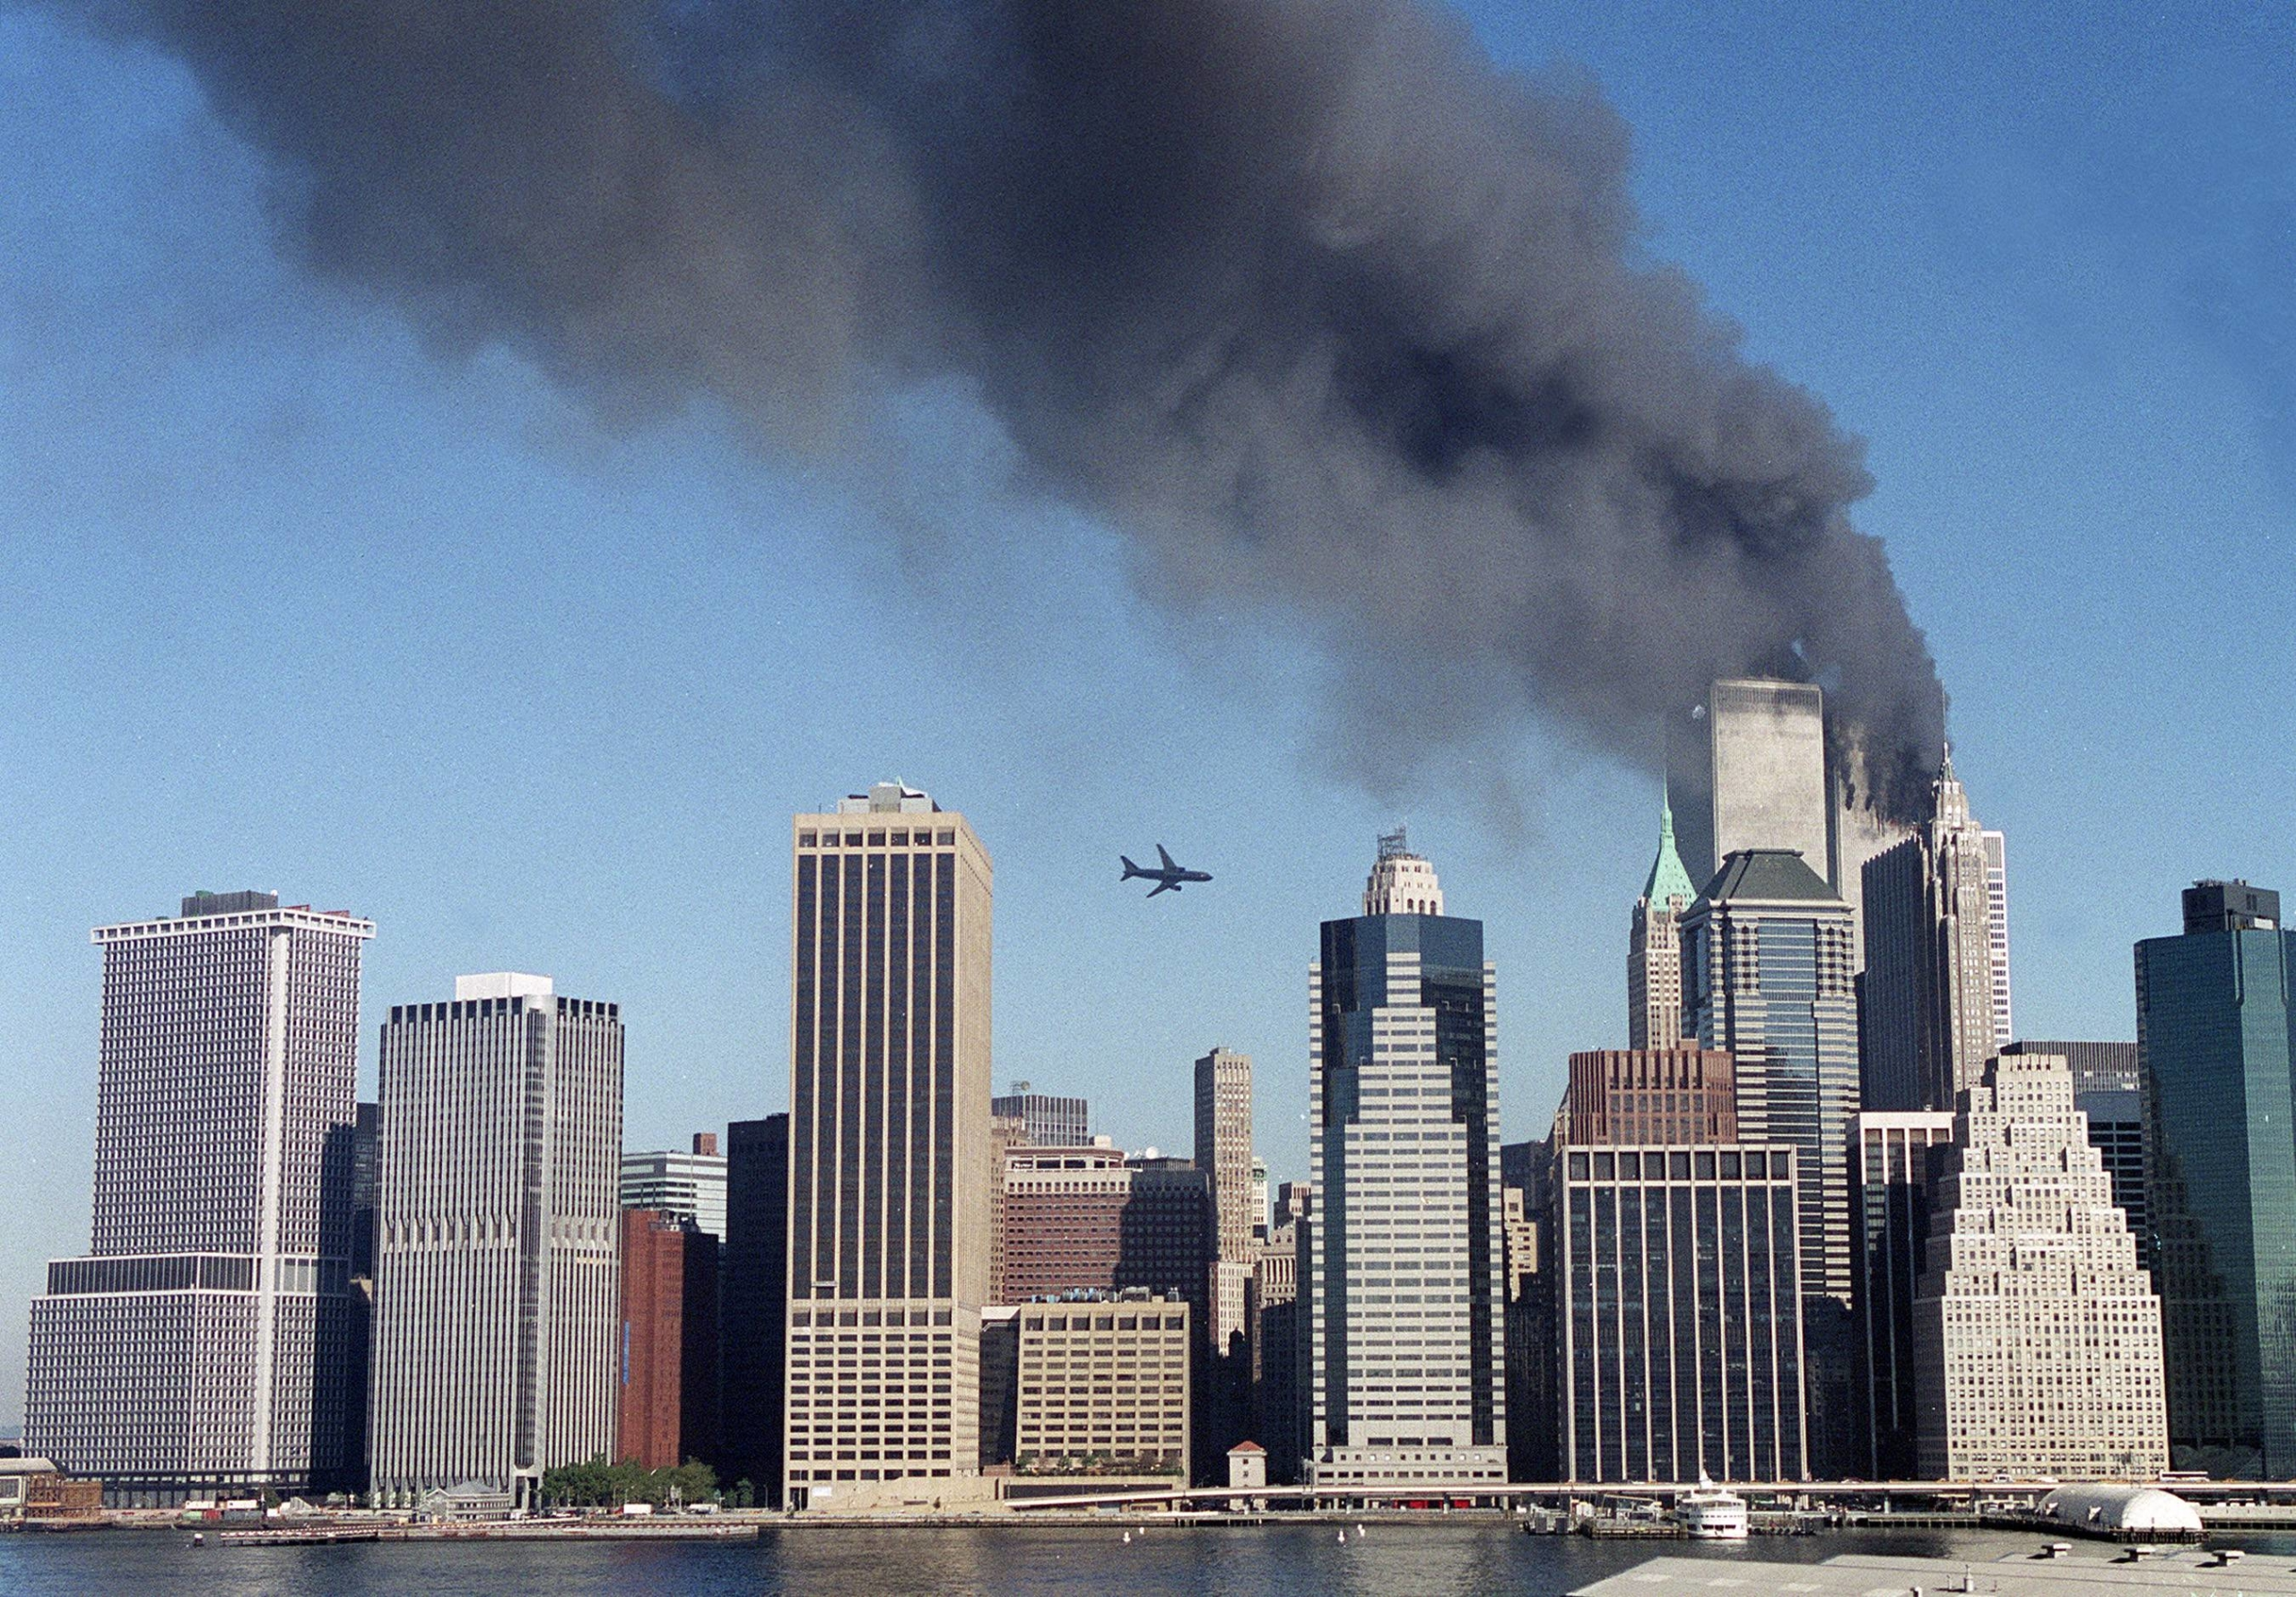 United Airlines Flight 175 approaches the South Tower of the World Trade Center in New York on the morning of Sept. 11, 2001, while the North Tower burns after it was struck by American Airlines Flight 11.   KELLY GUENTHER / THE NEW YORK TIMES